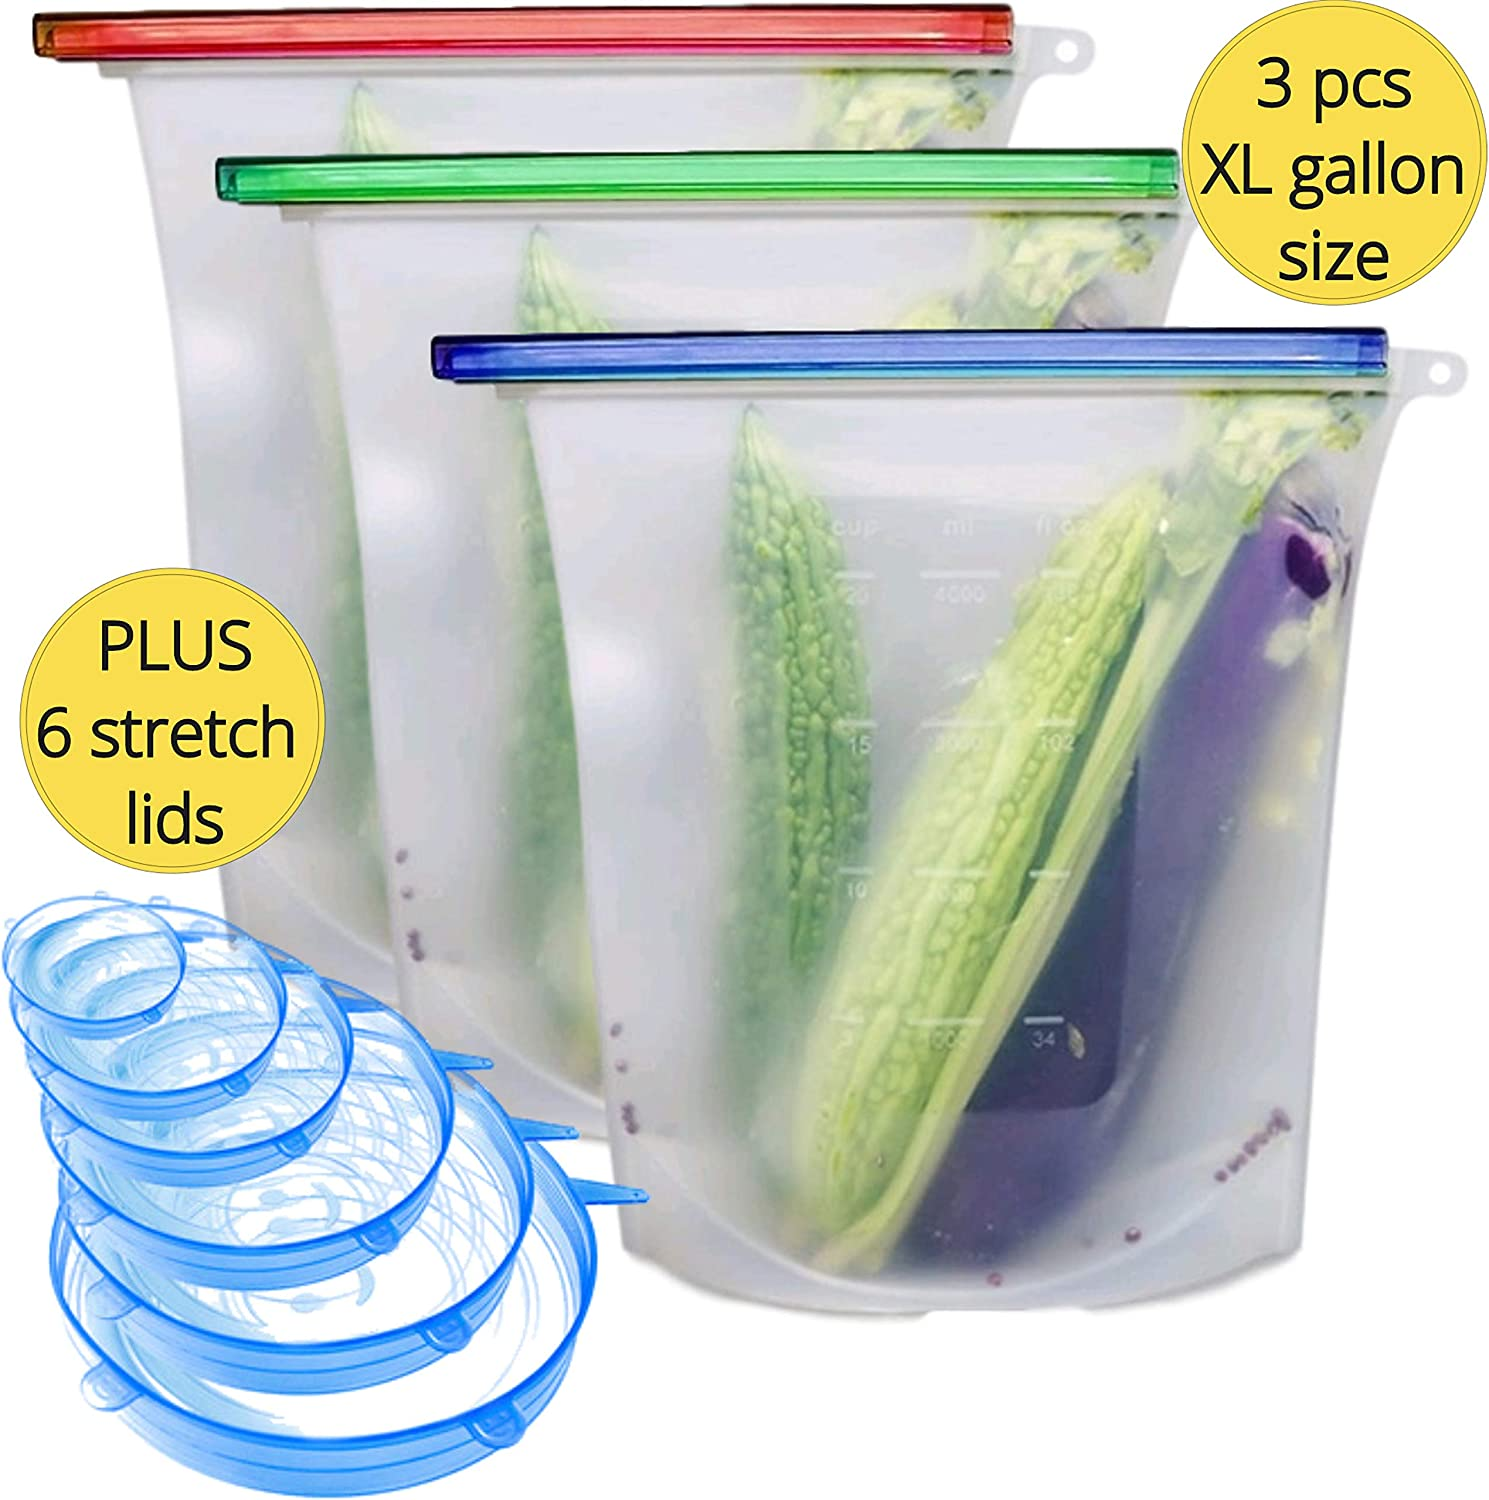 BodyMoves 3 pack gallon size Reusable Silicone Food Storage Bags plus Stretch Lids